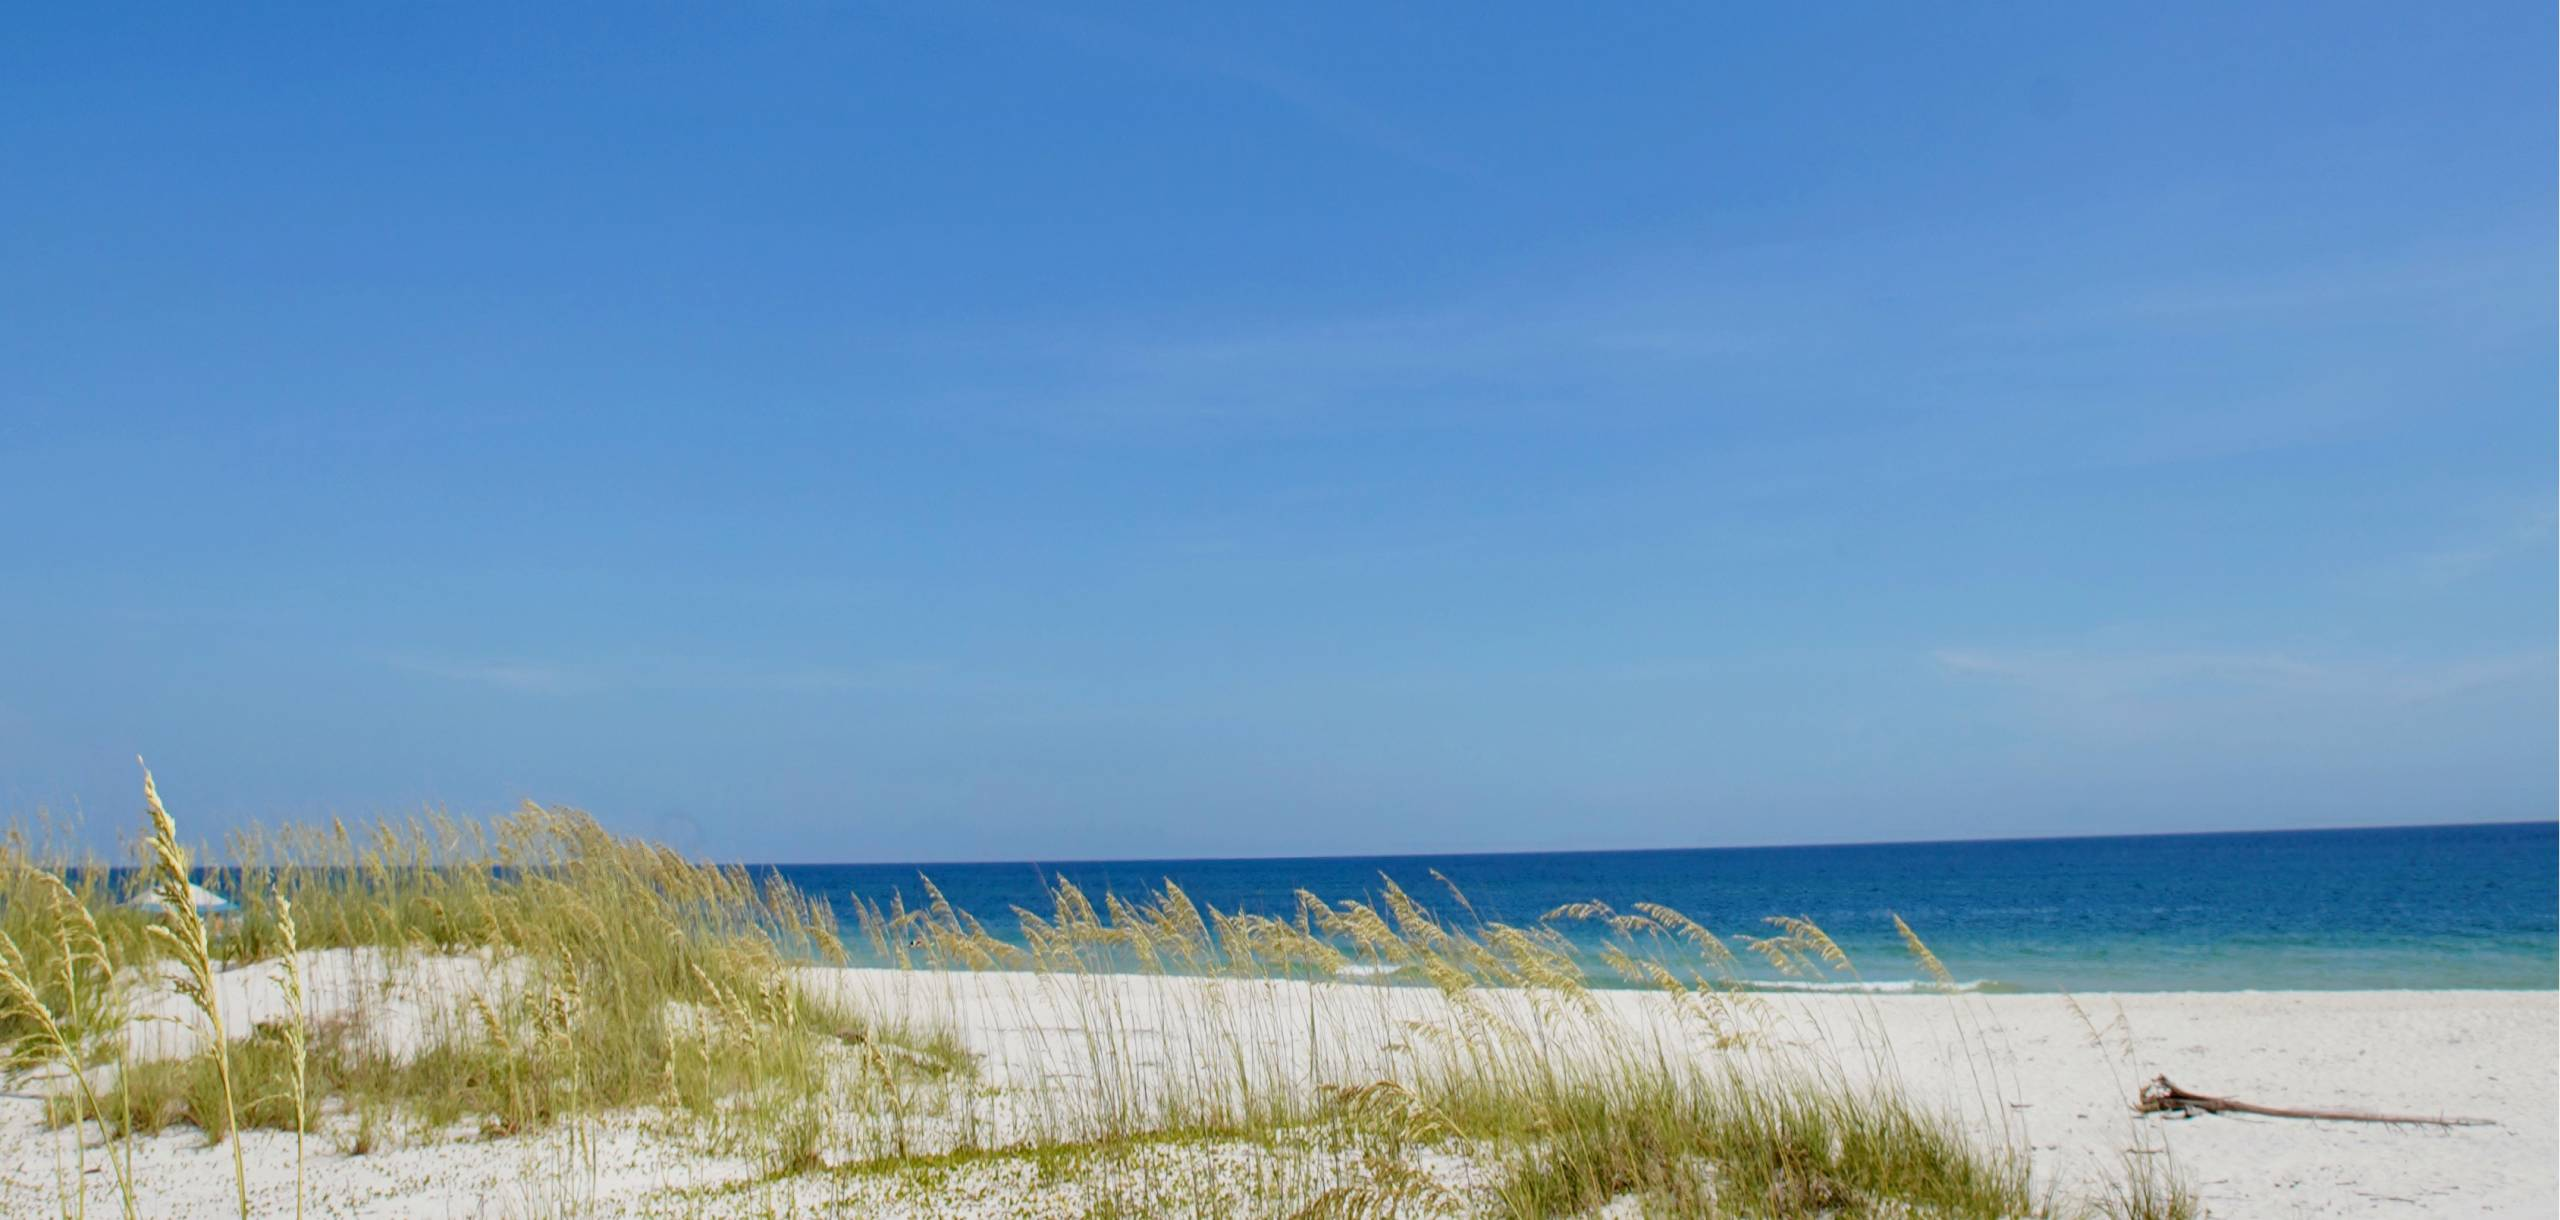 West Beach, Gulf Shores, AL